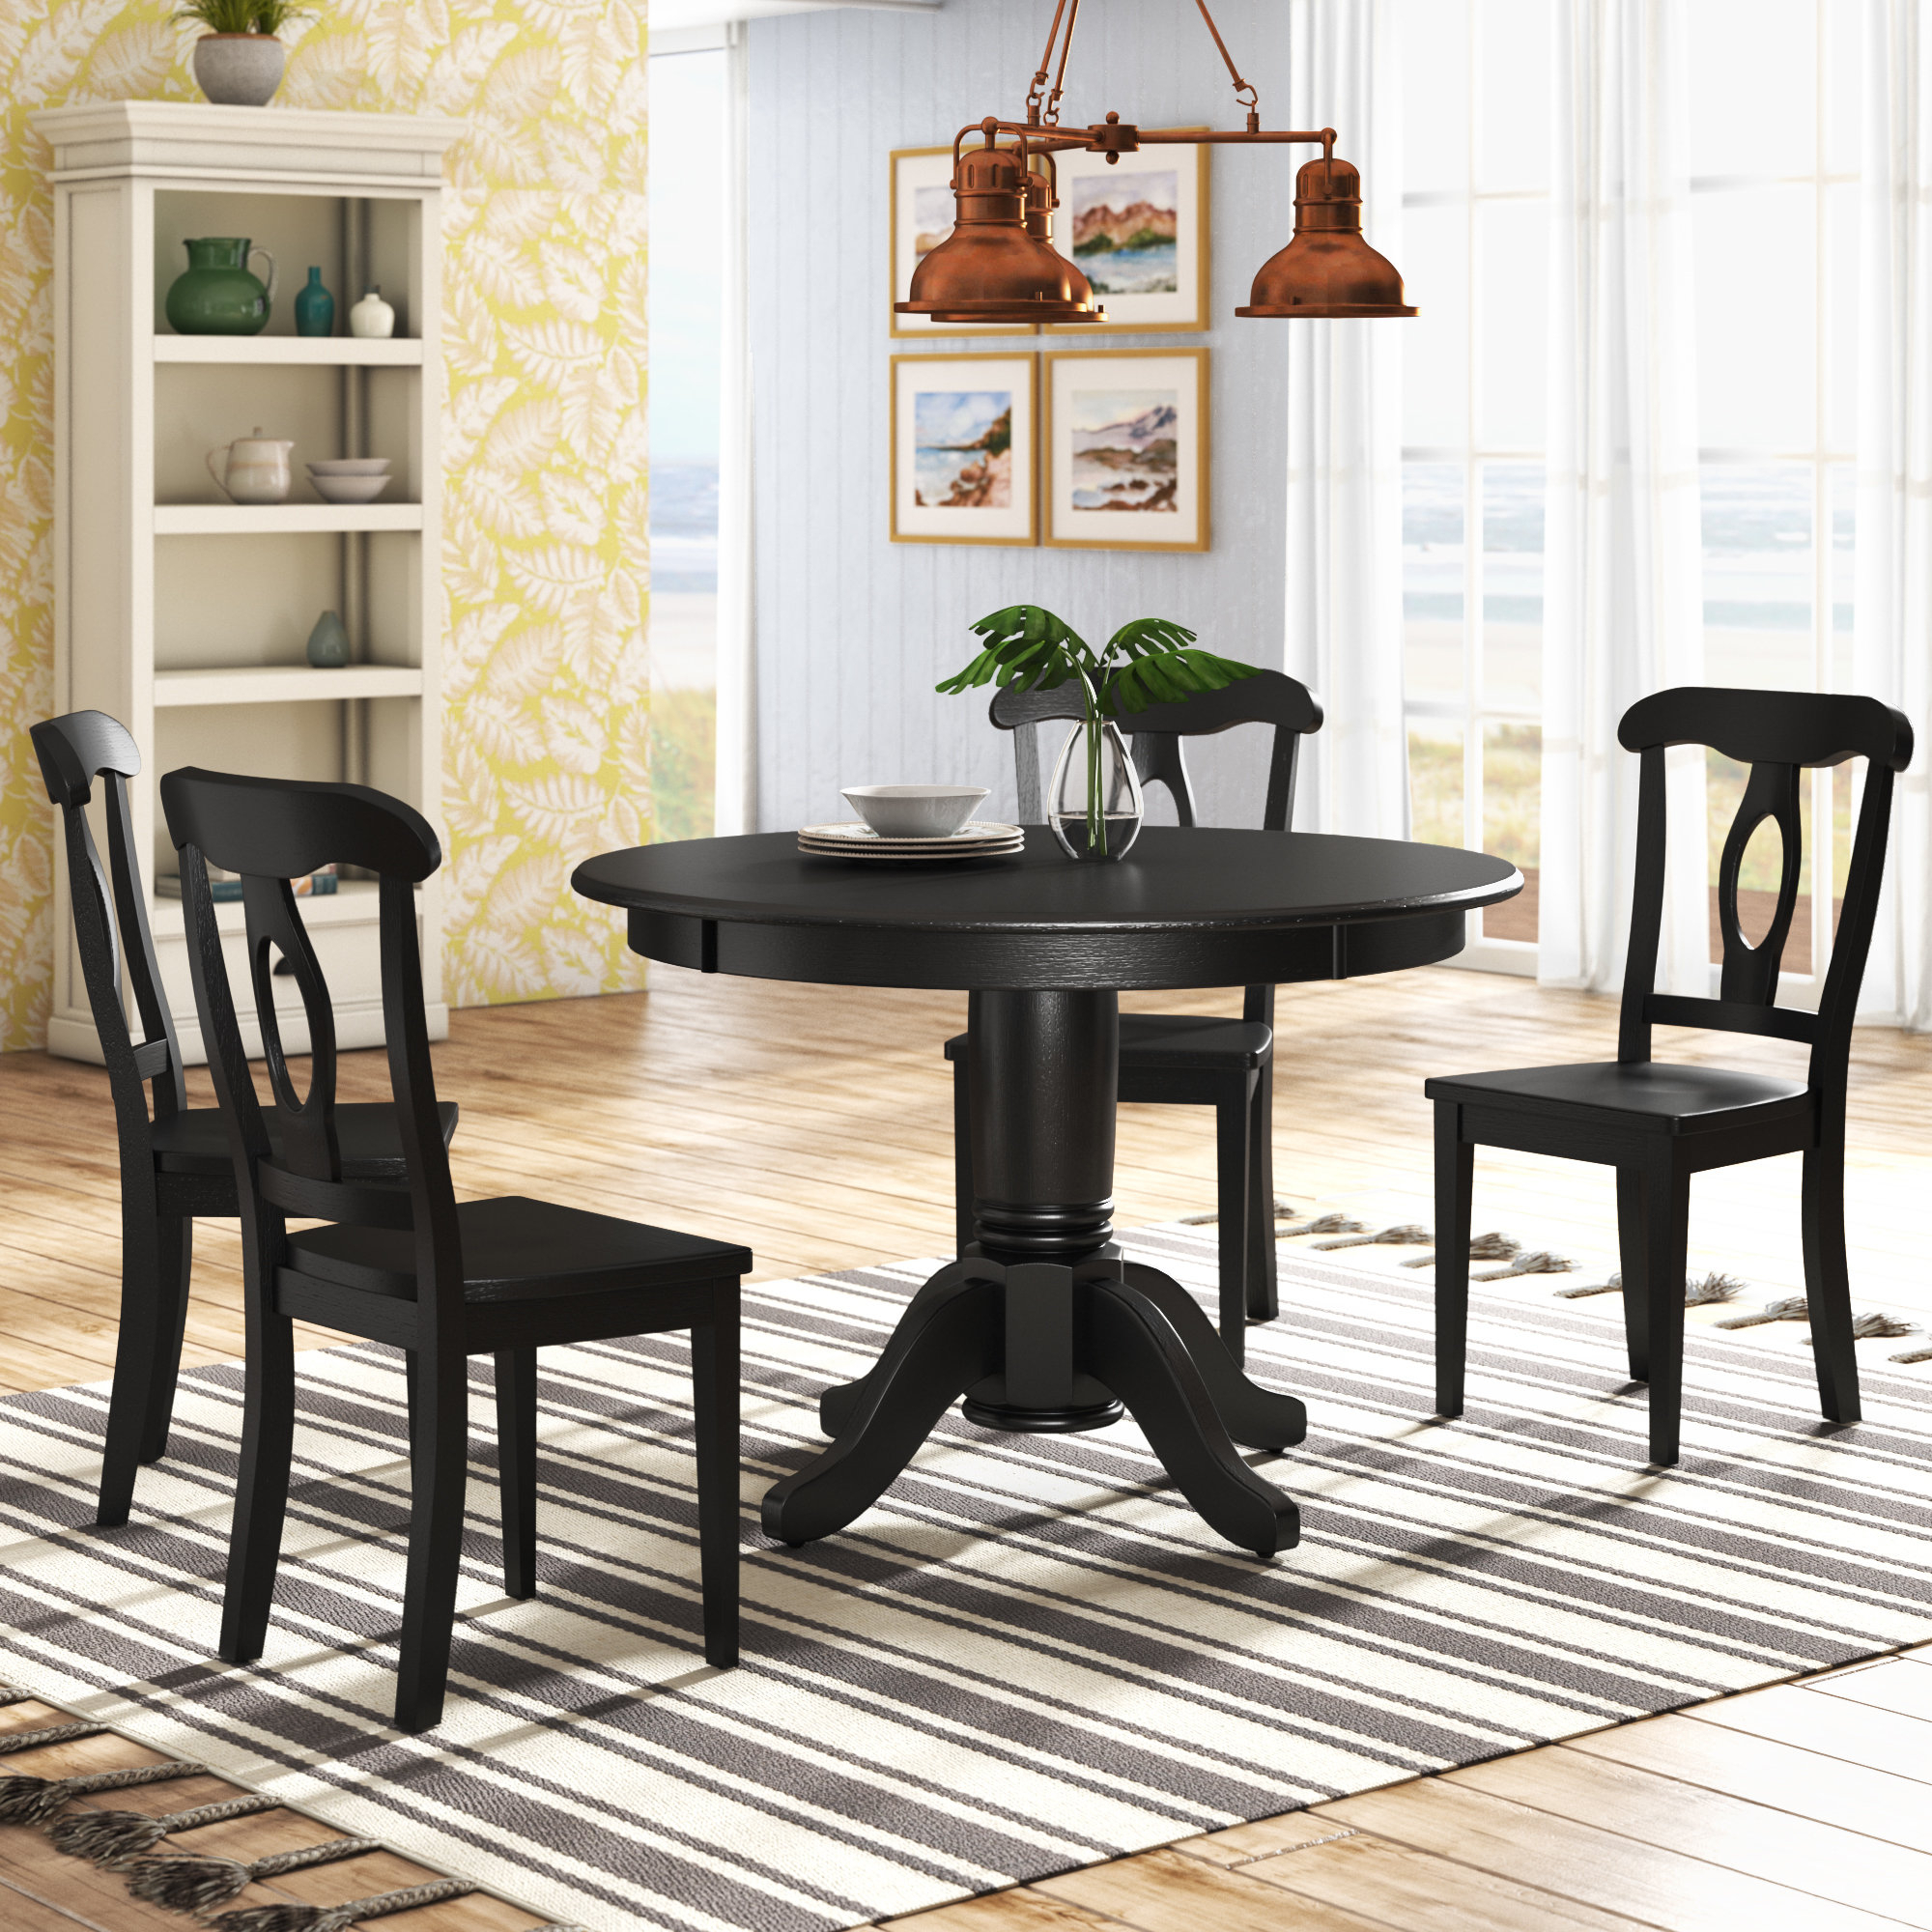 Four Piece Dining Set – Summervilleaugusta For Most Current Mukai 5 Piece Dining Sets (View 19 of 20)